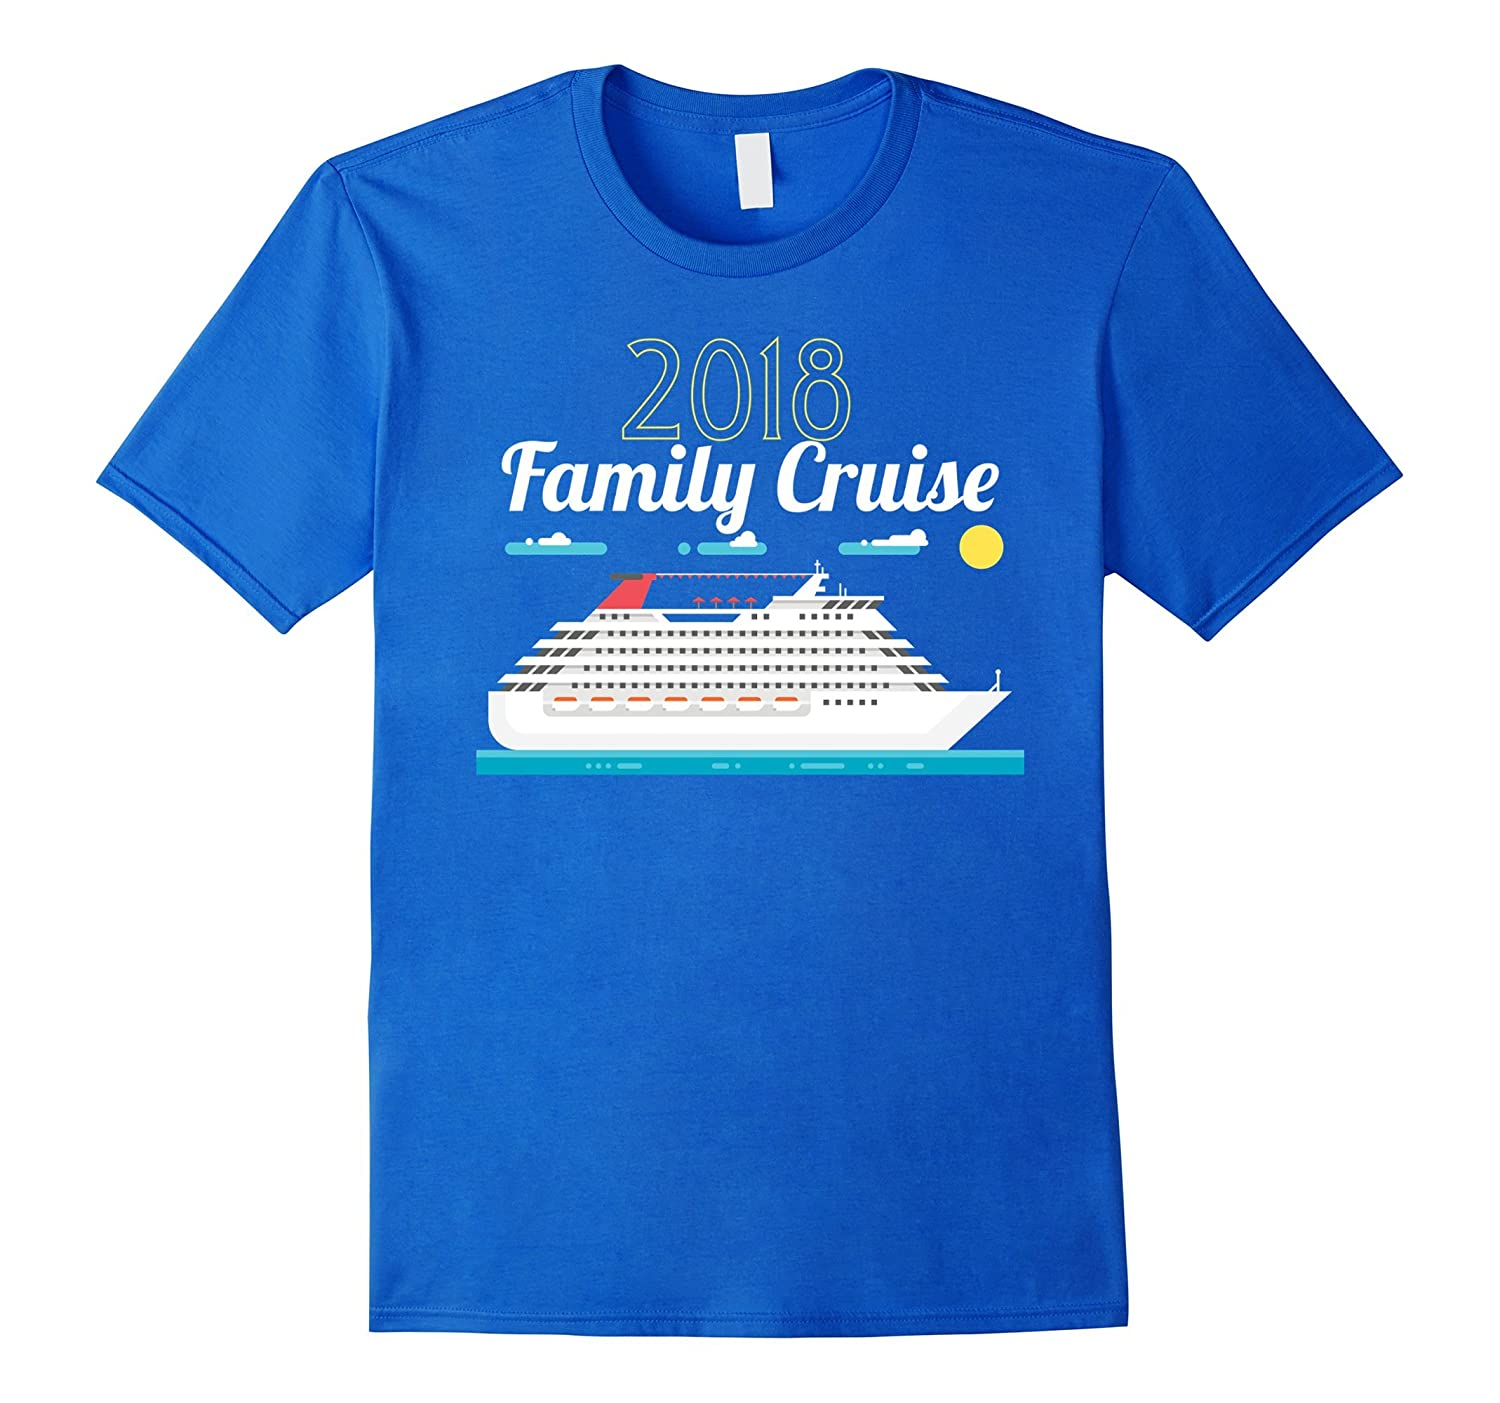 2018 Family Cruise T-Shirt - Cruise Vacation-TH